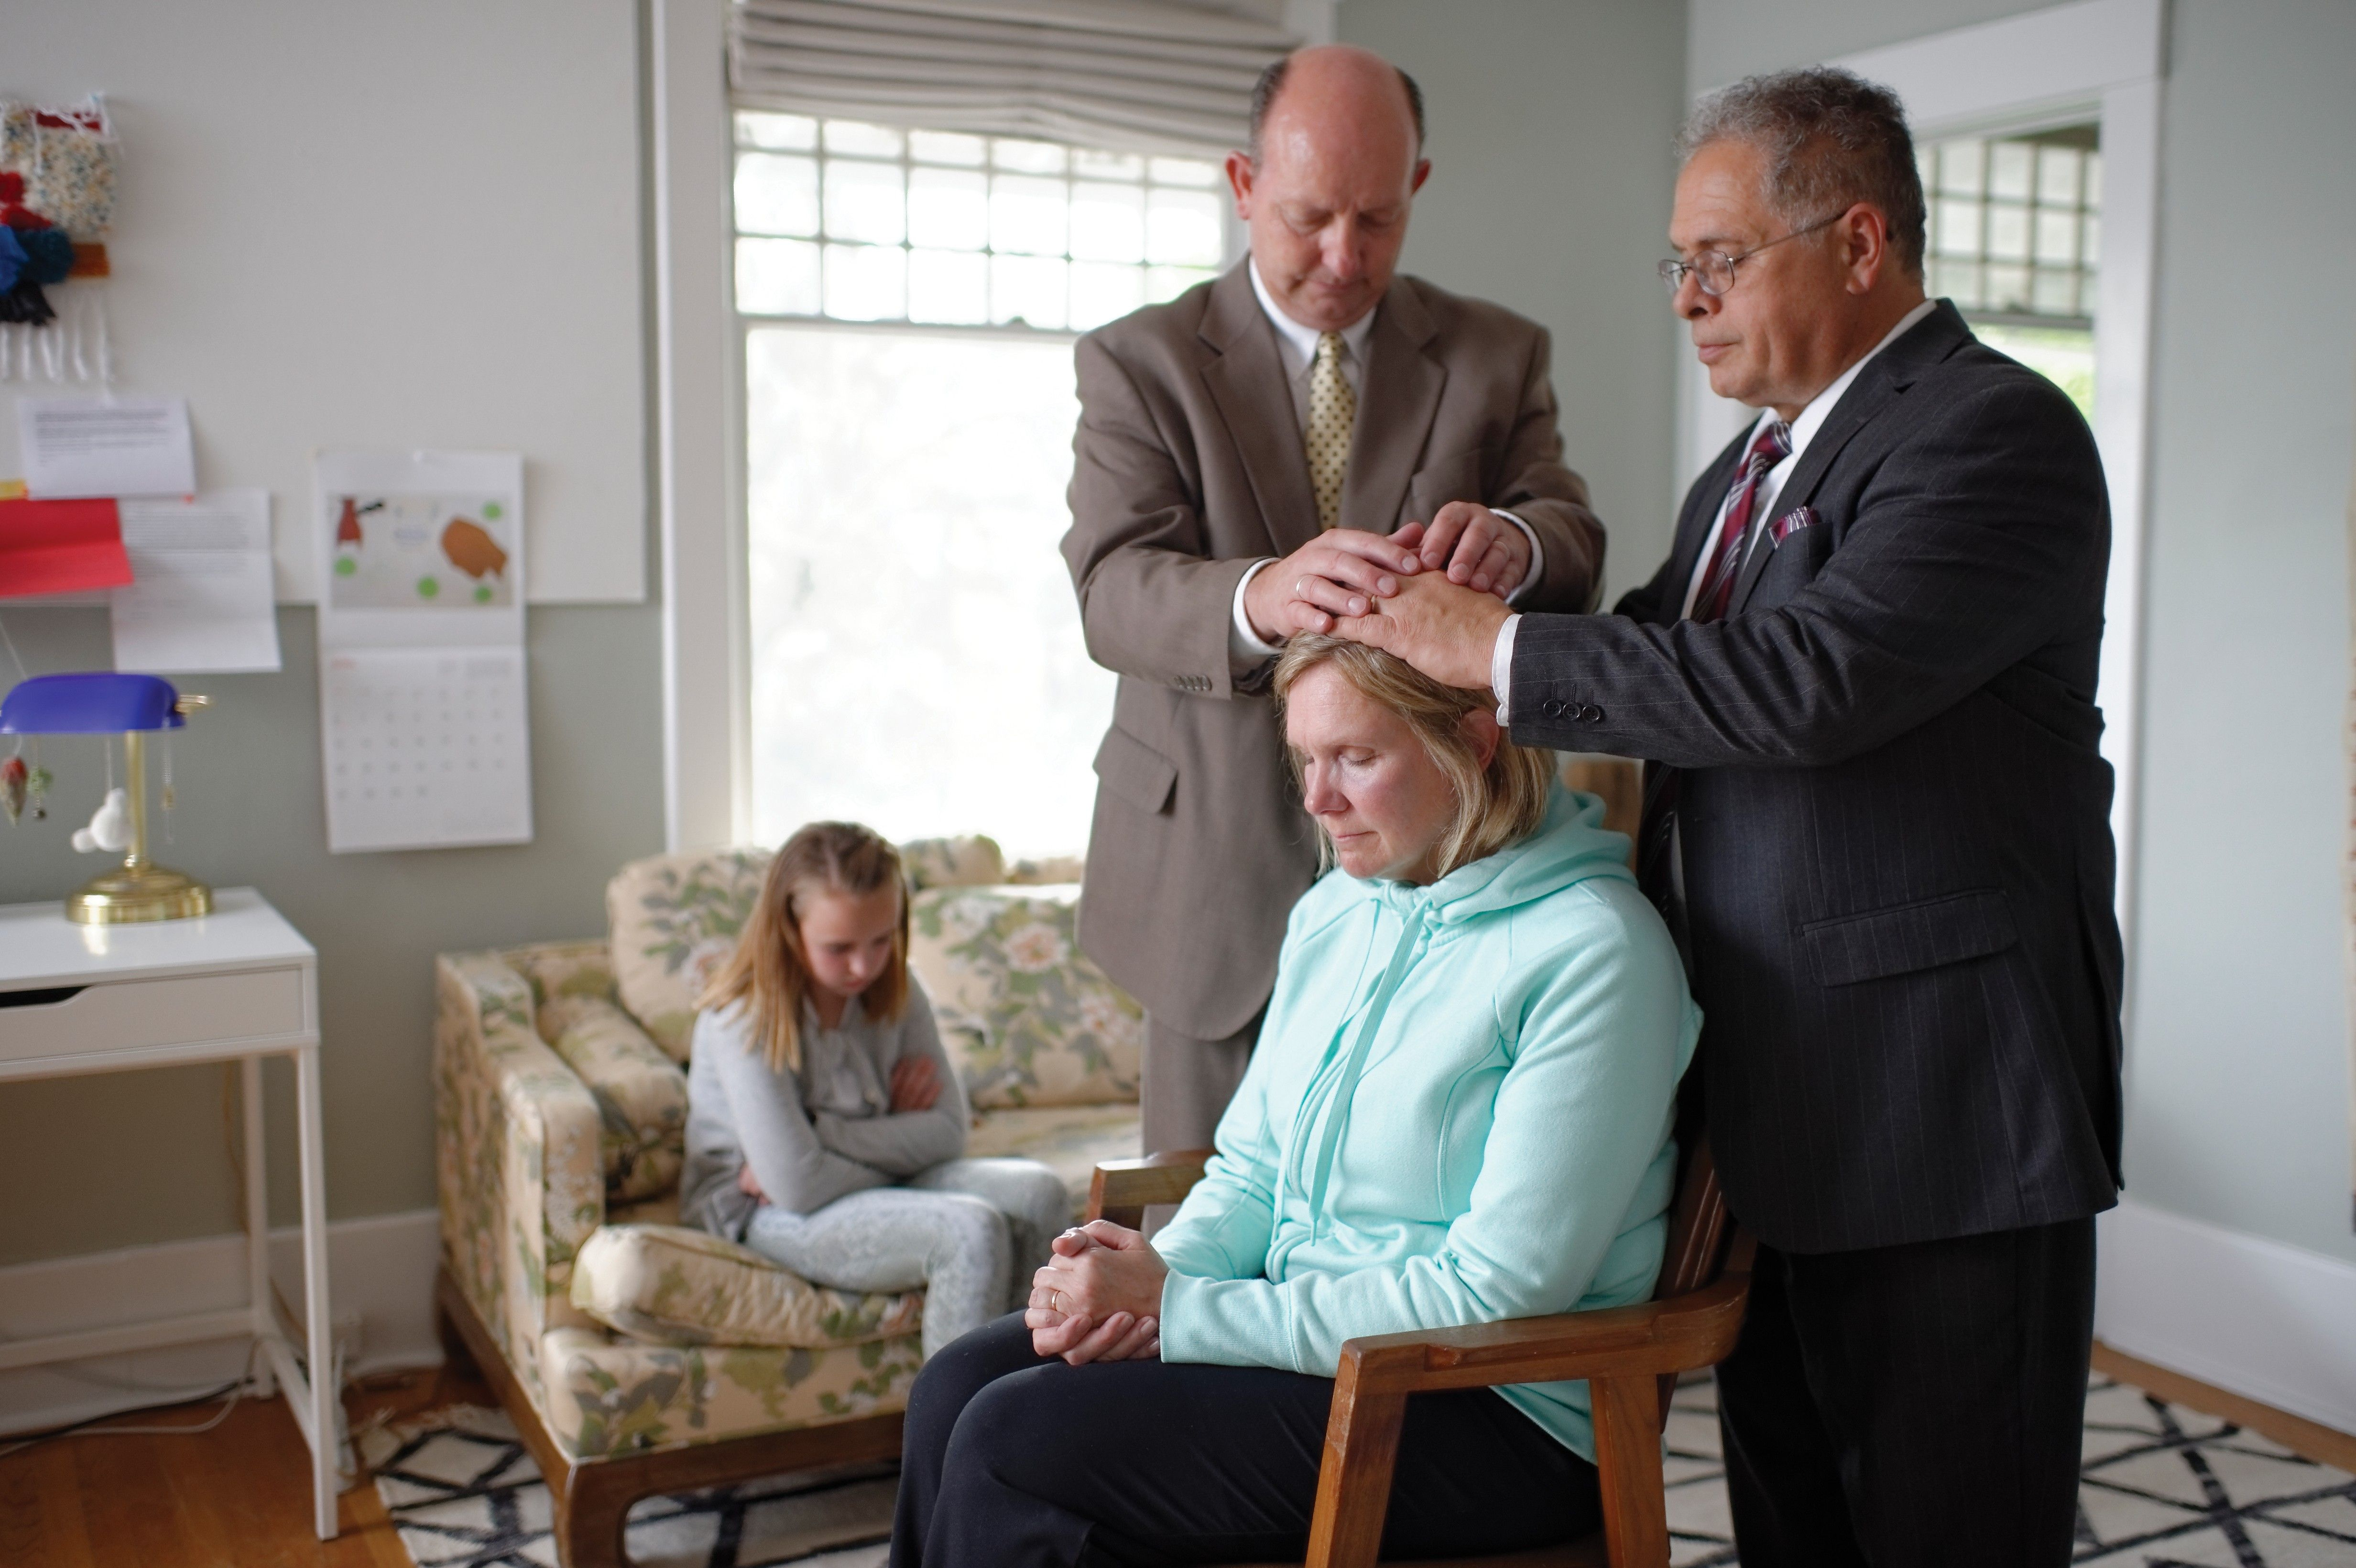 A woman receiving a priesthood blessing in her home.